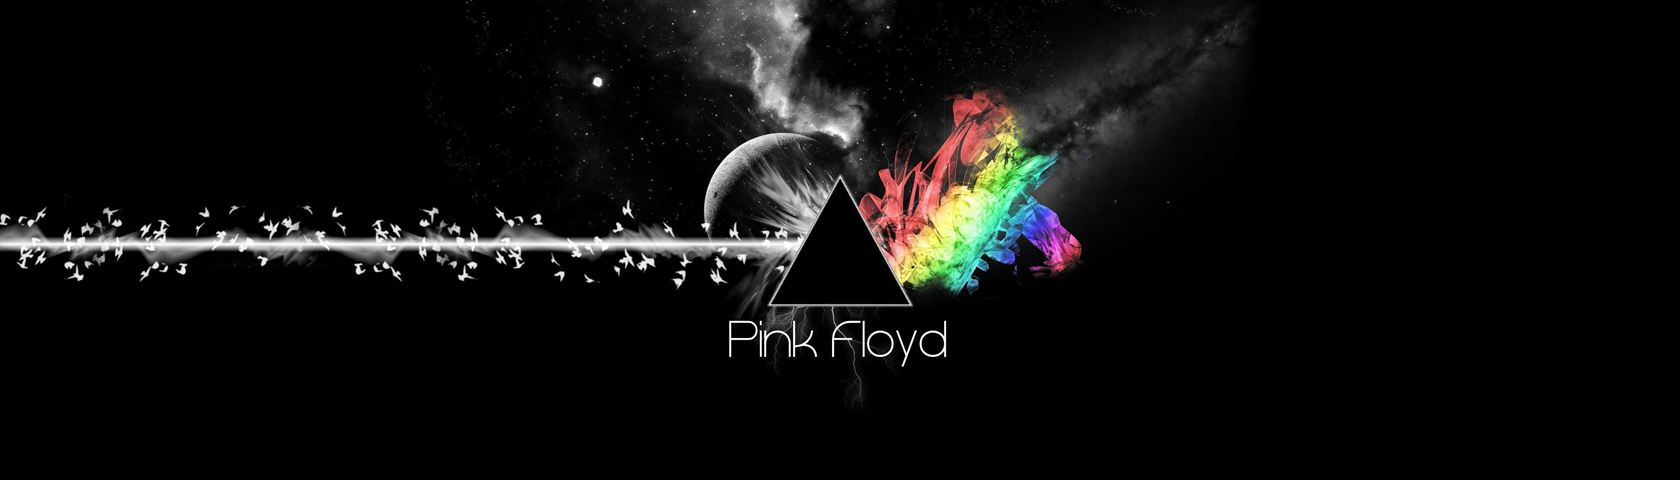 Pink Floyd Dark Side Of The Moon Images Wallpaperfusion By